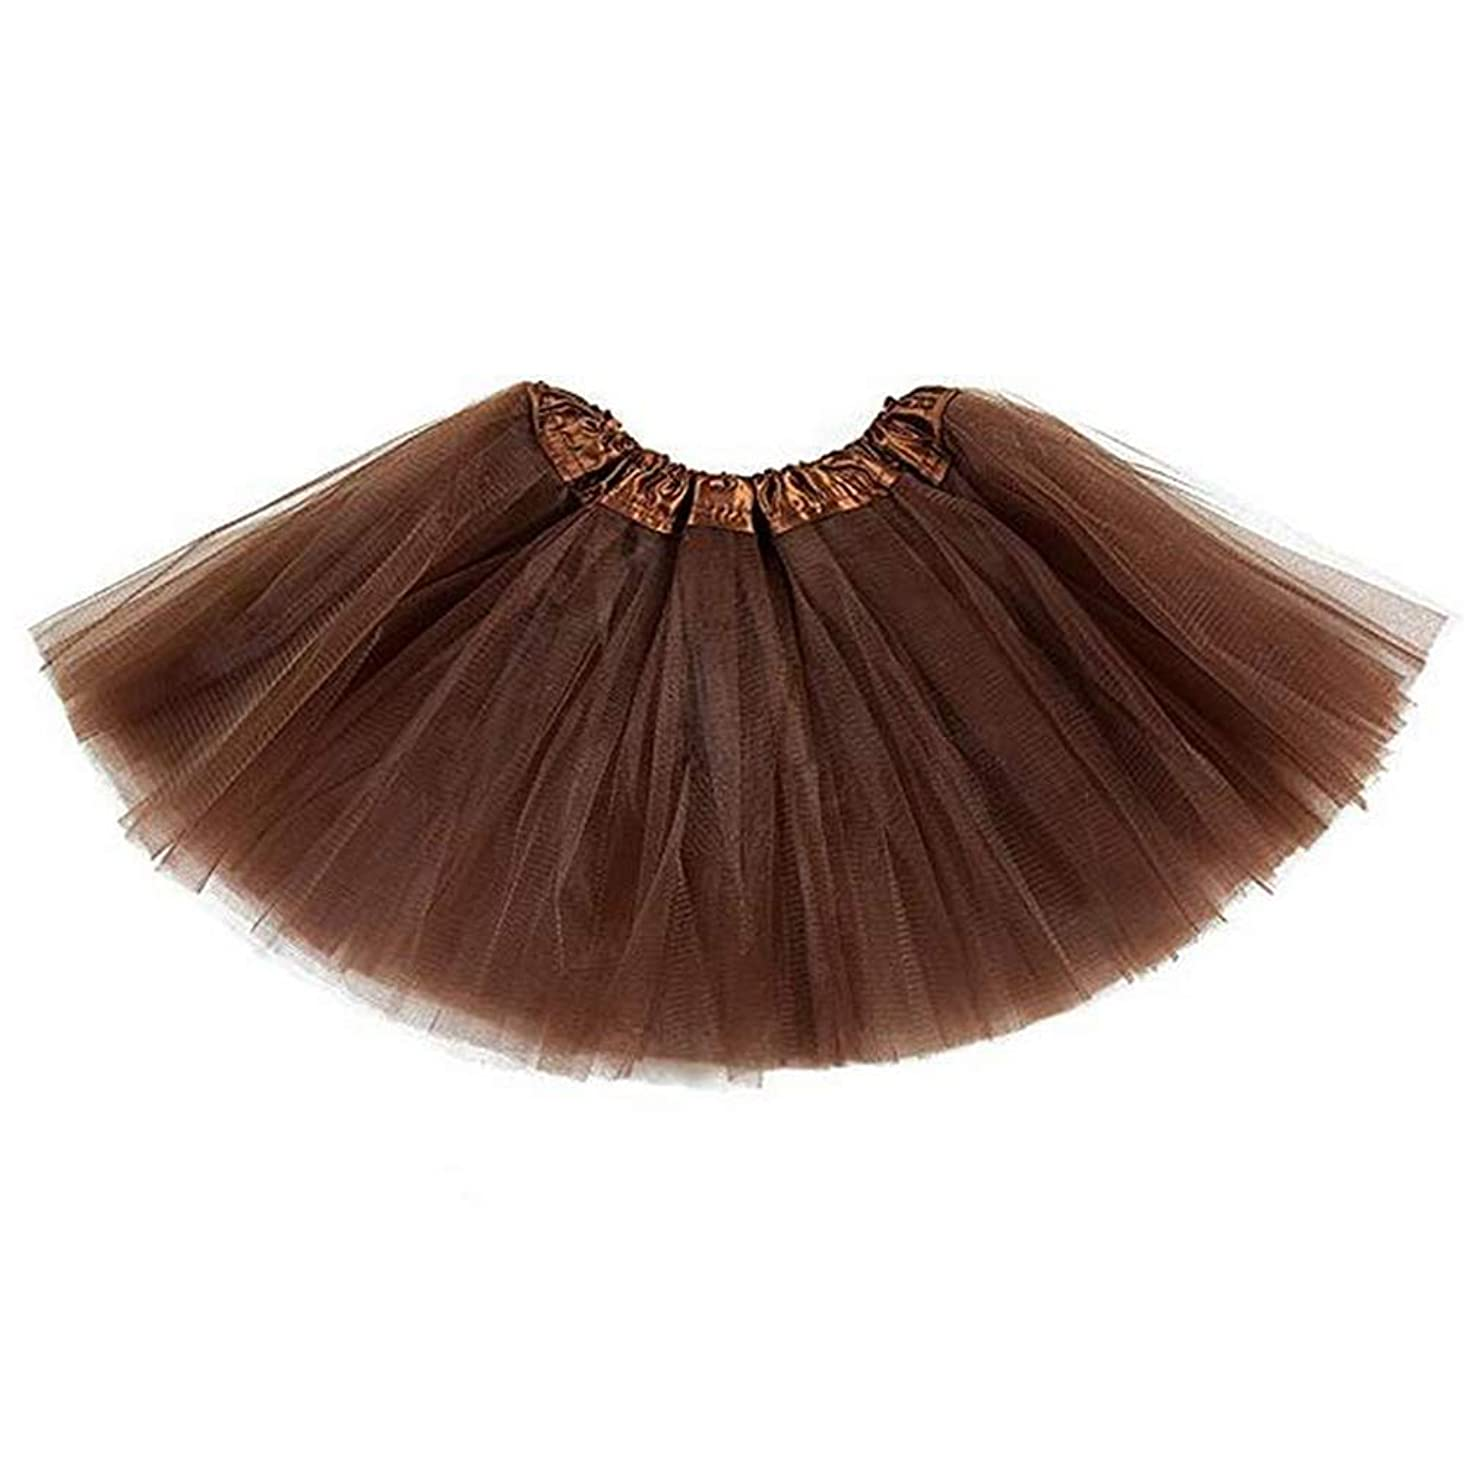 belababy Baby Girl Tutus for Toddlers 5 Layers Tulle Halloween Dress Up Skirt